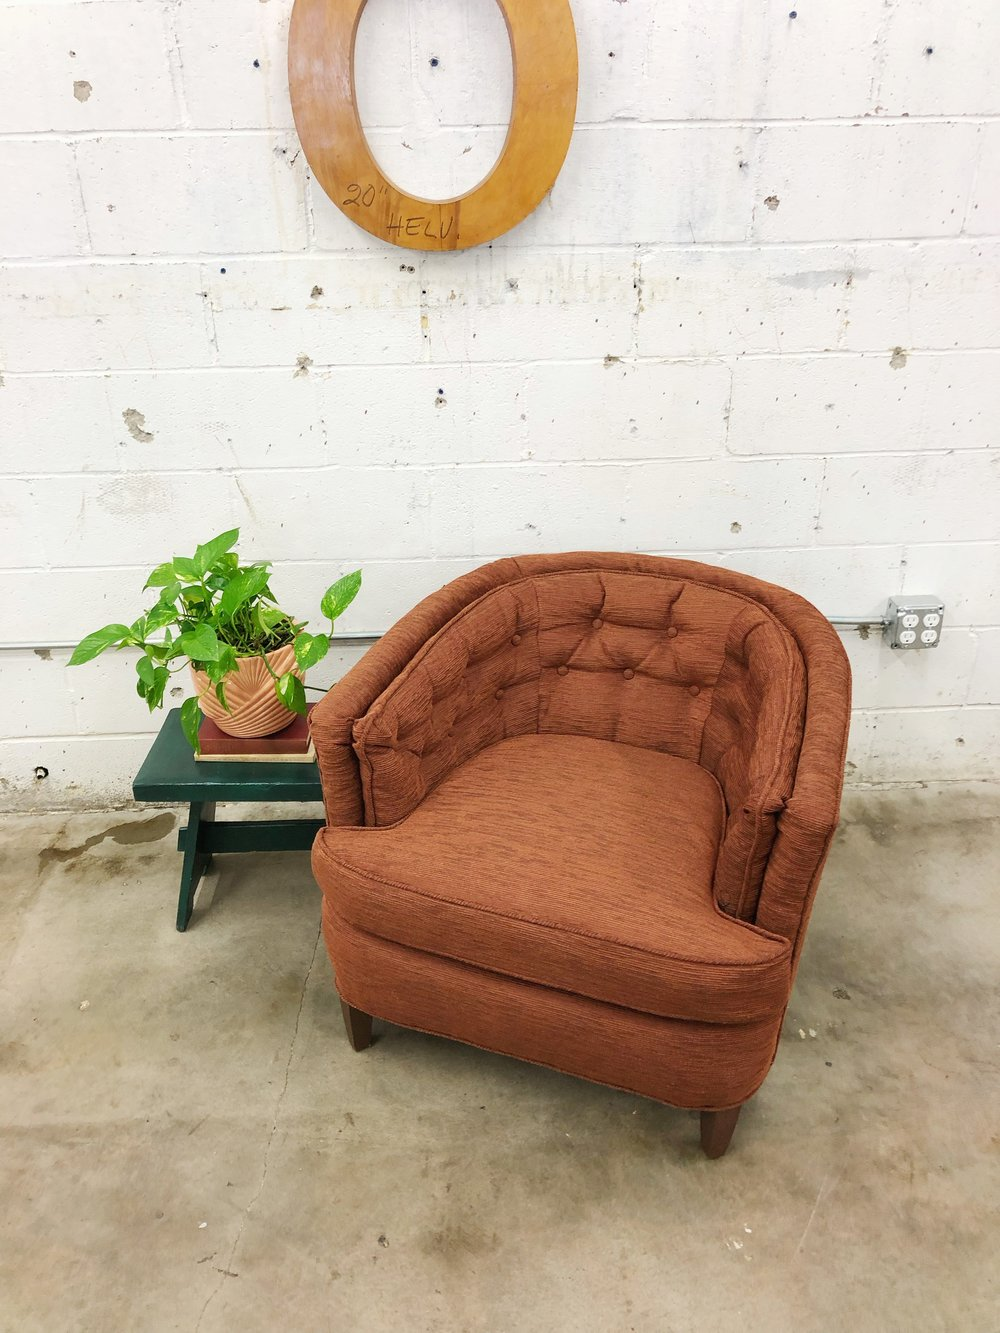 Find this beauty for sale on the Retro Den showroom. She's looking for her forever home.